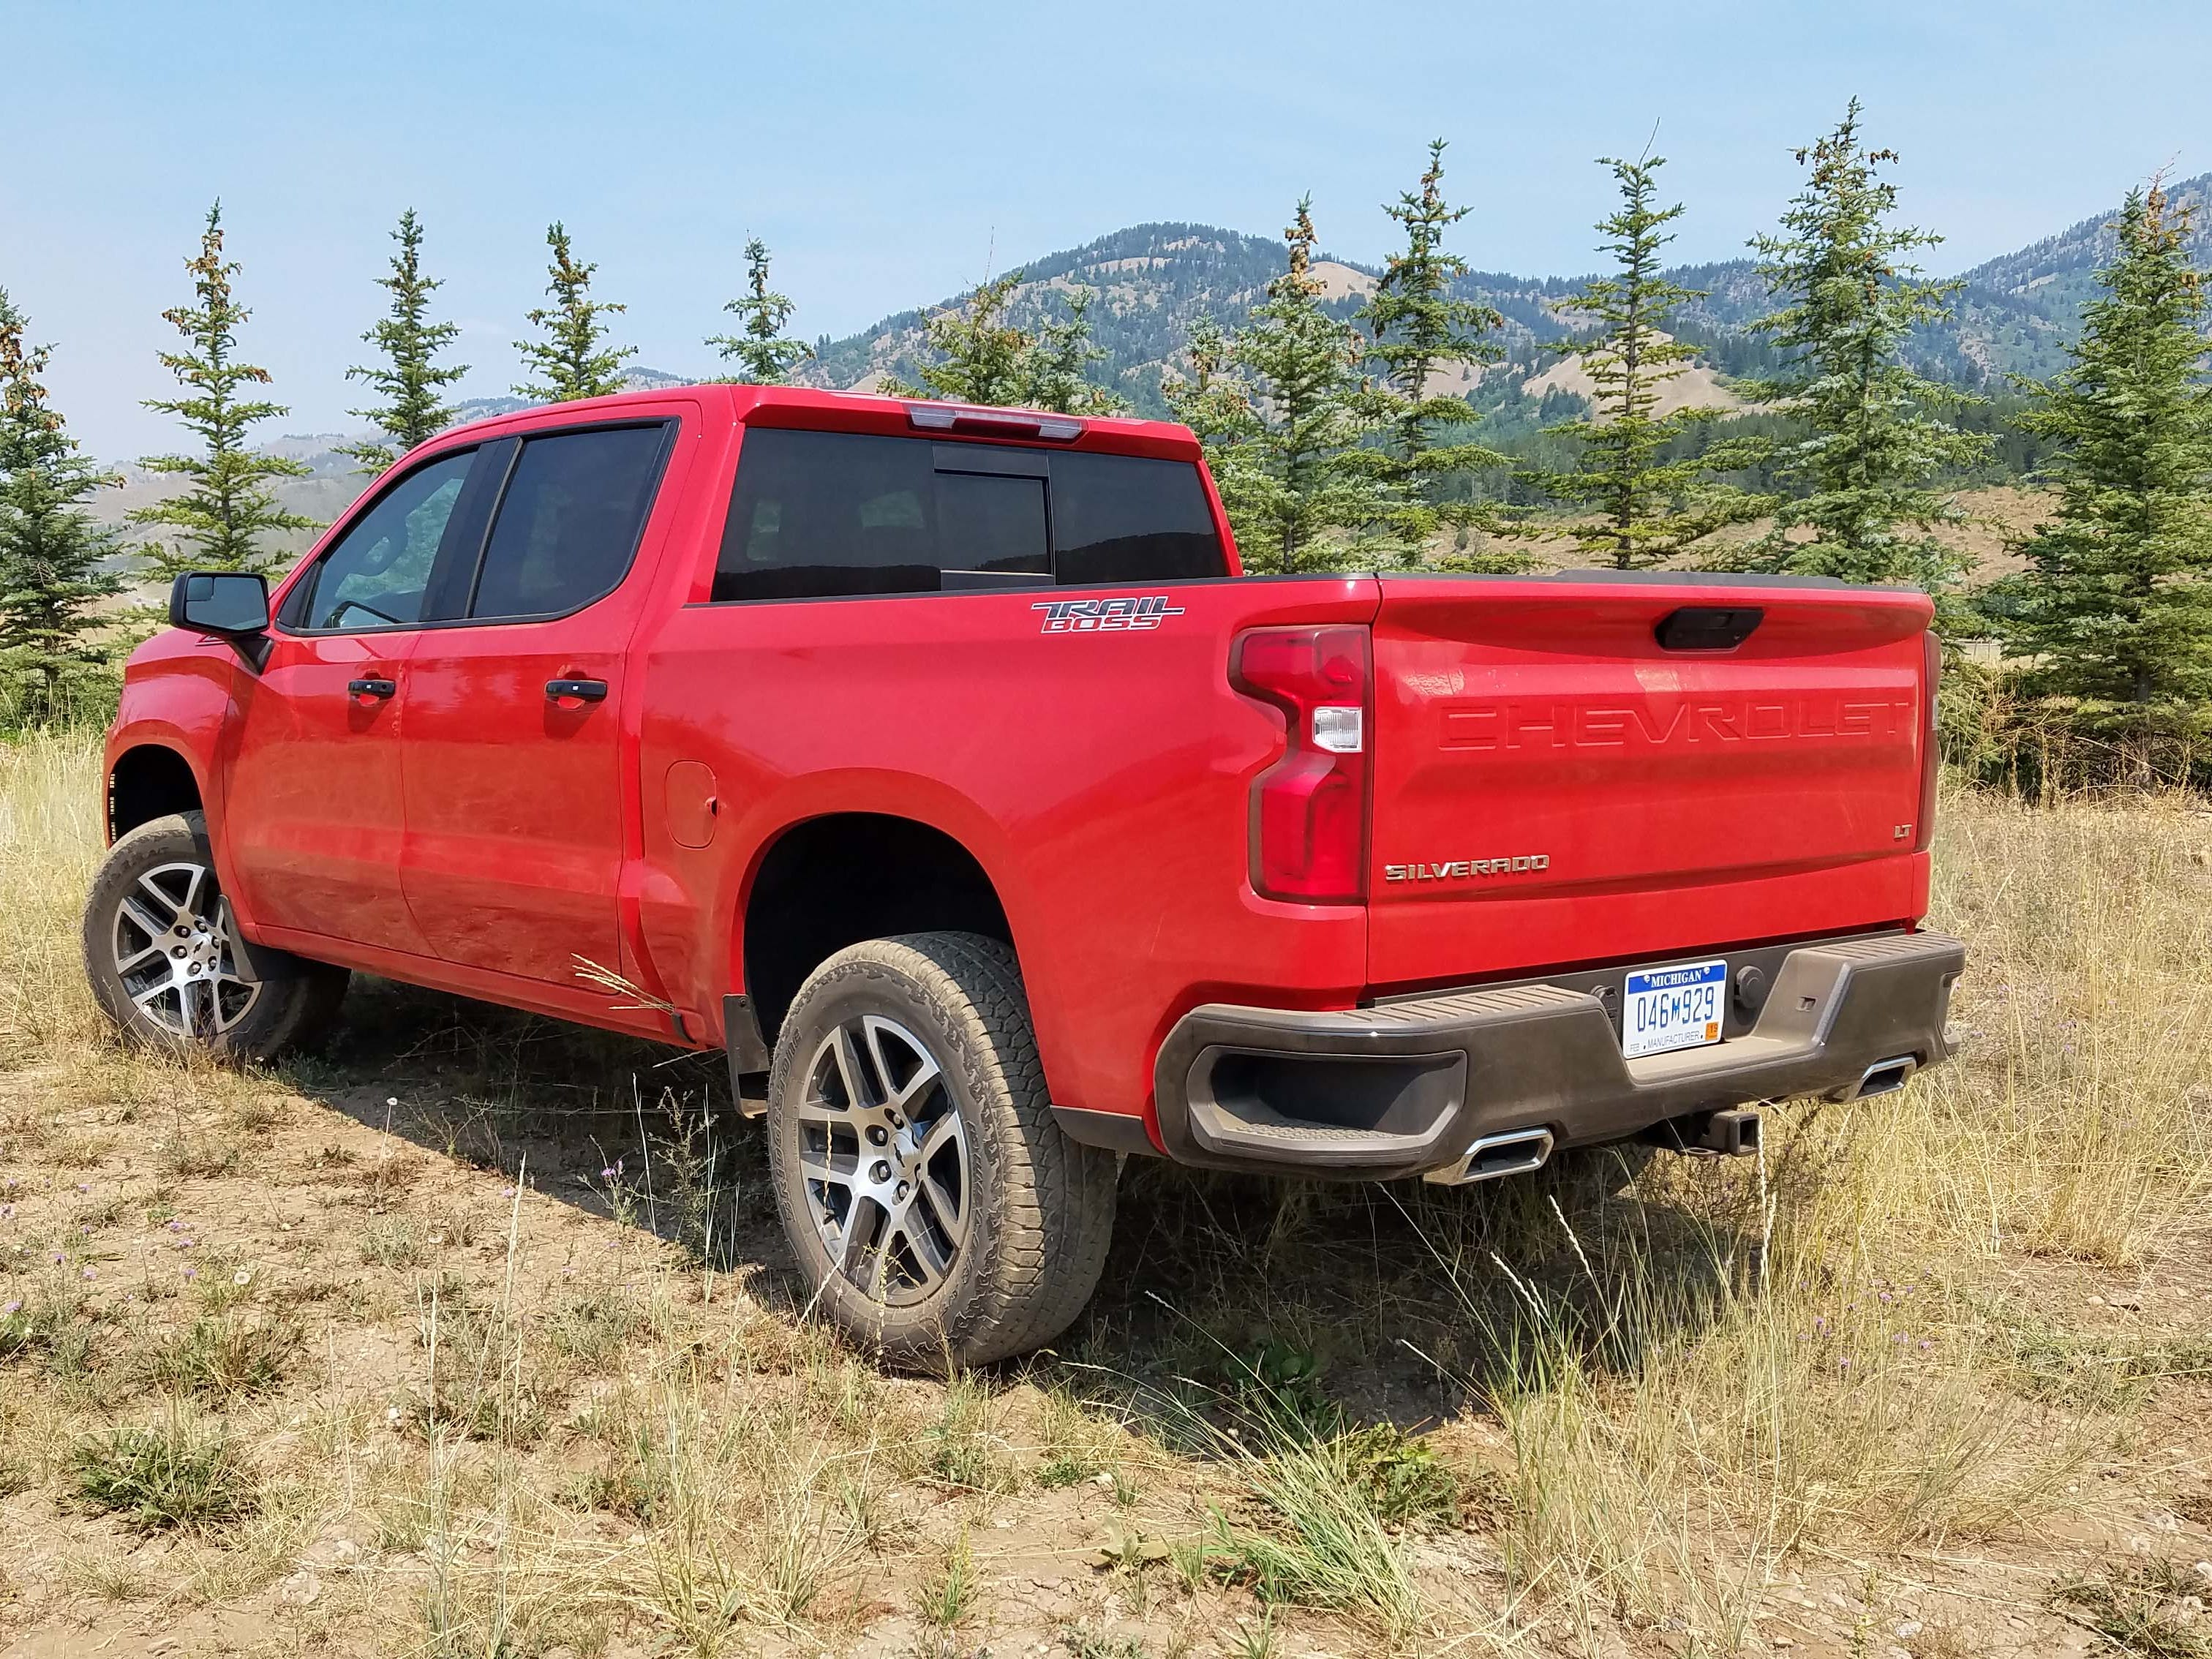 New for 2019, the Z71 trim of the Chevy Silverado gets additional off-road muscle called Trail Boss. The Boss includes skid plates, a 2-inch lifted suspension and 18-inch wheels sporting knobby tires. It is only available with the 5.3-liter V-8.